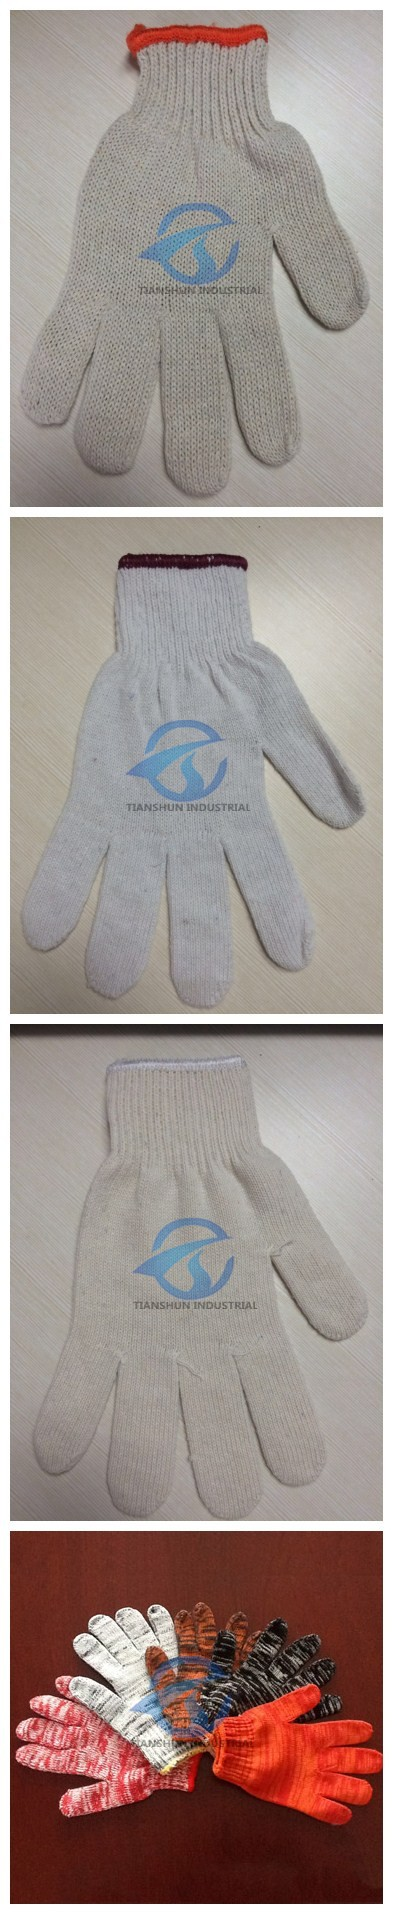 High Quality Cheaper Working Gloves Hand Protect Cotton Knitted Gloves